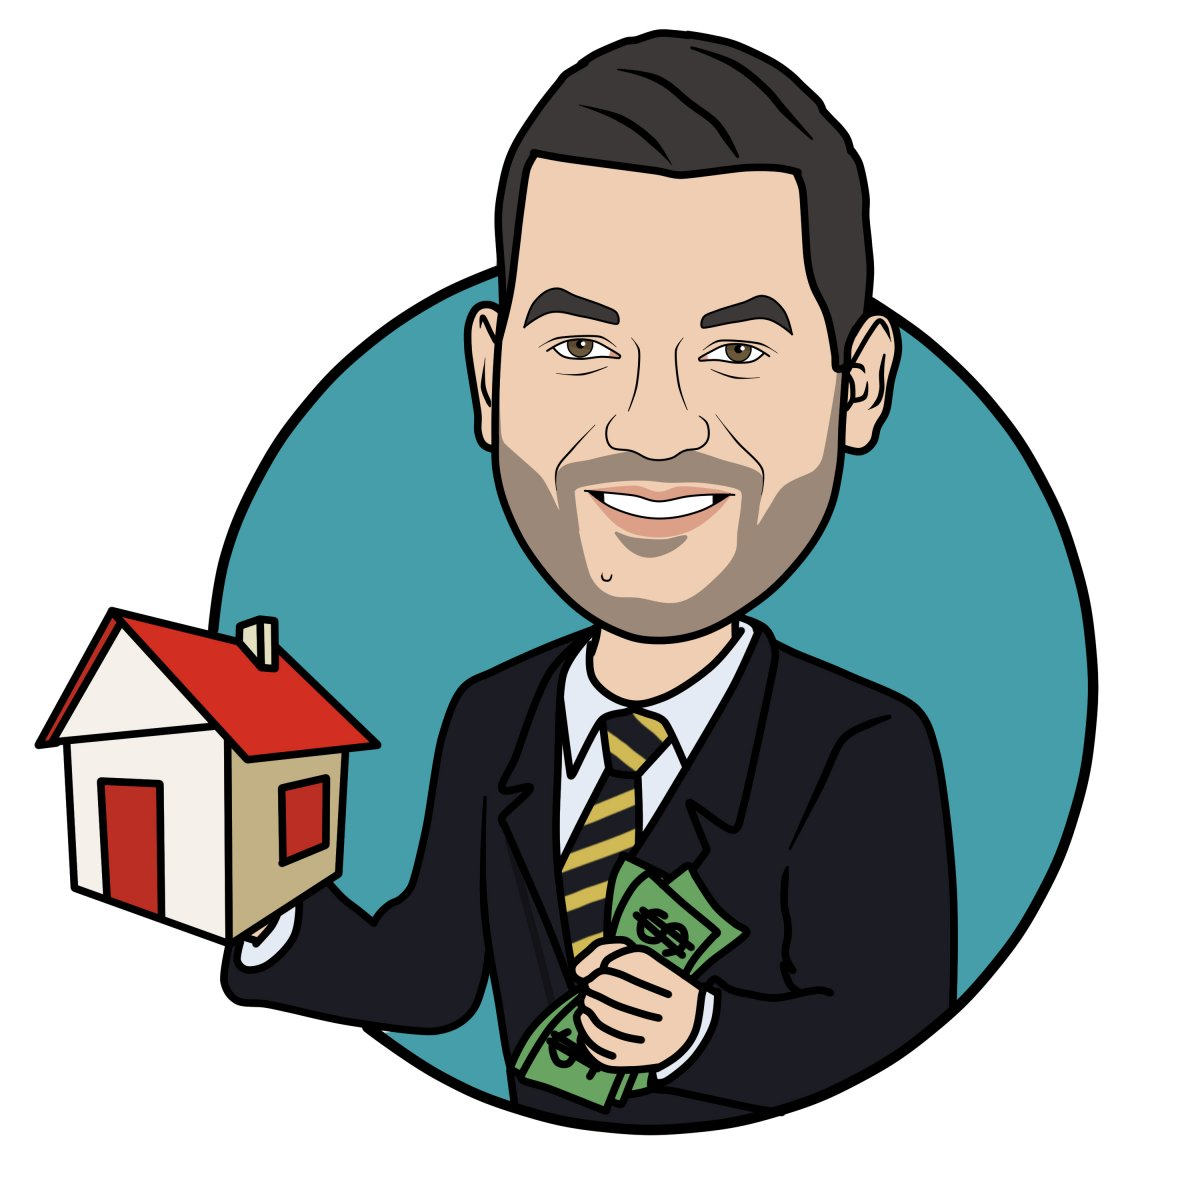 Ryan Buy My House! logo